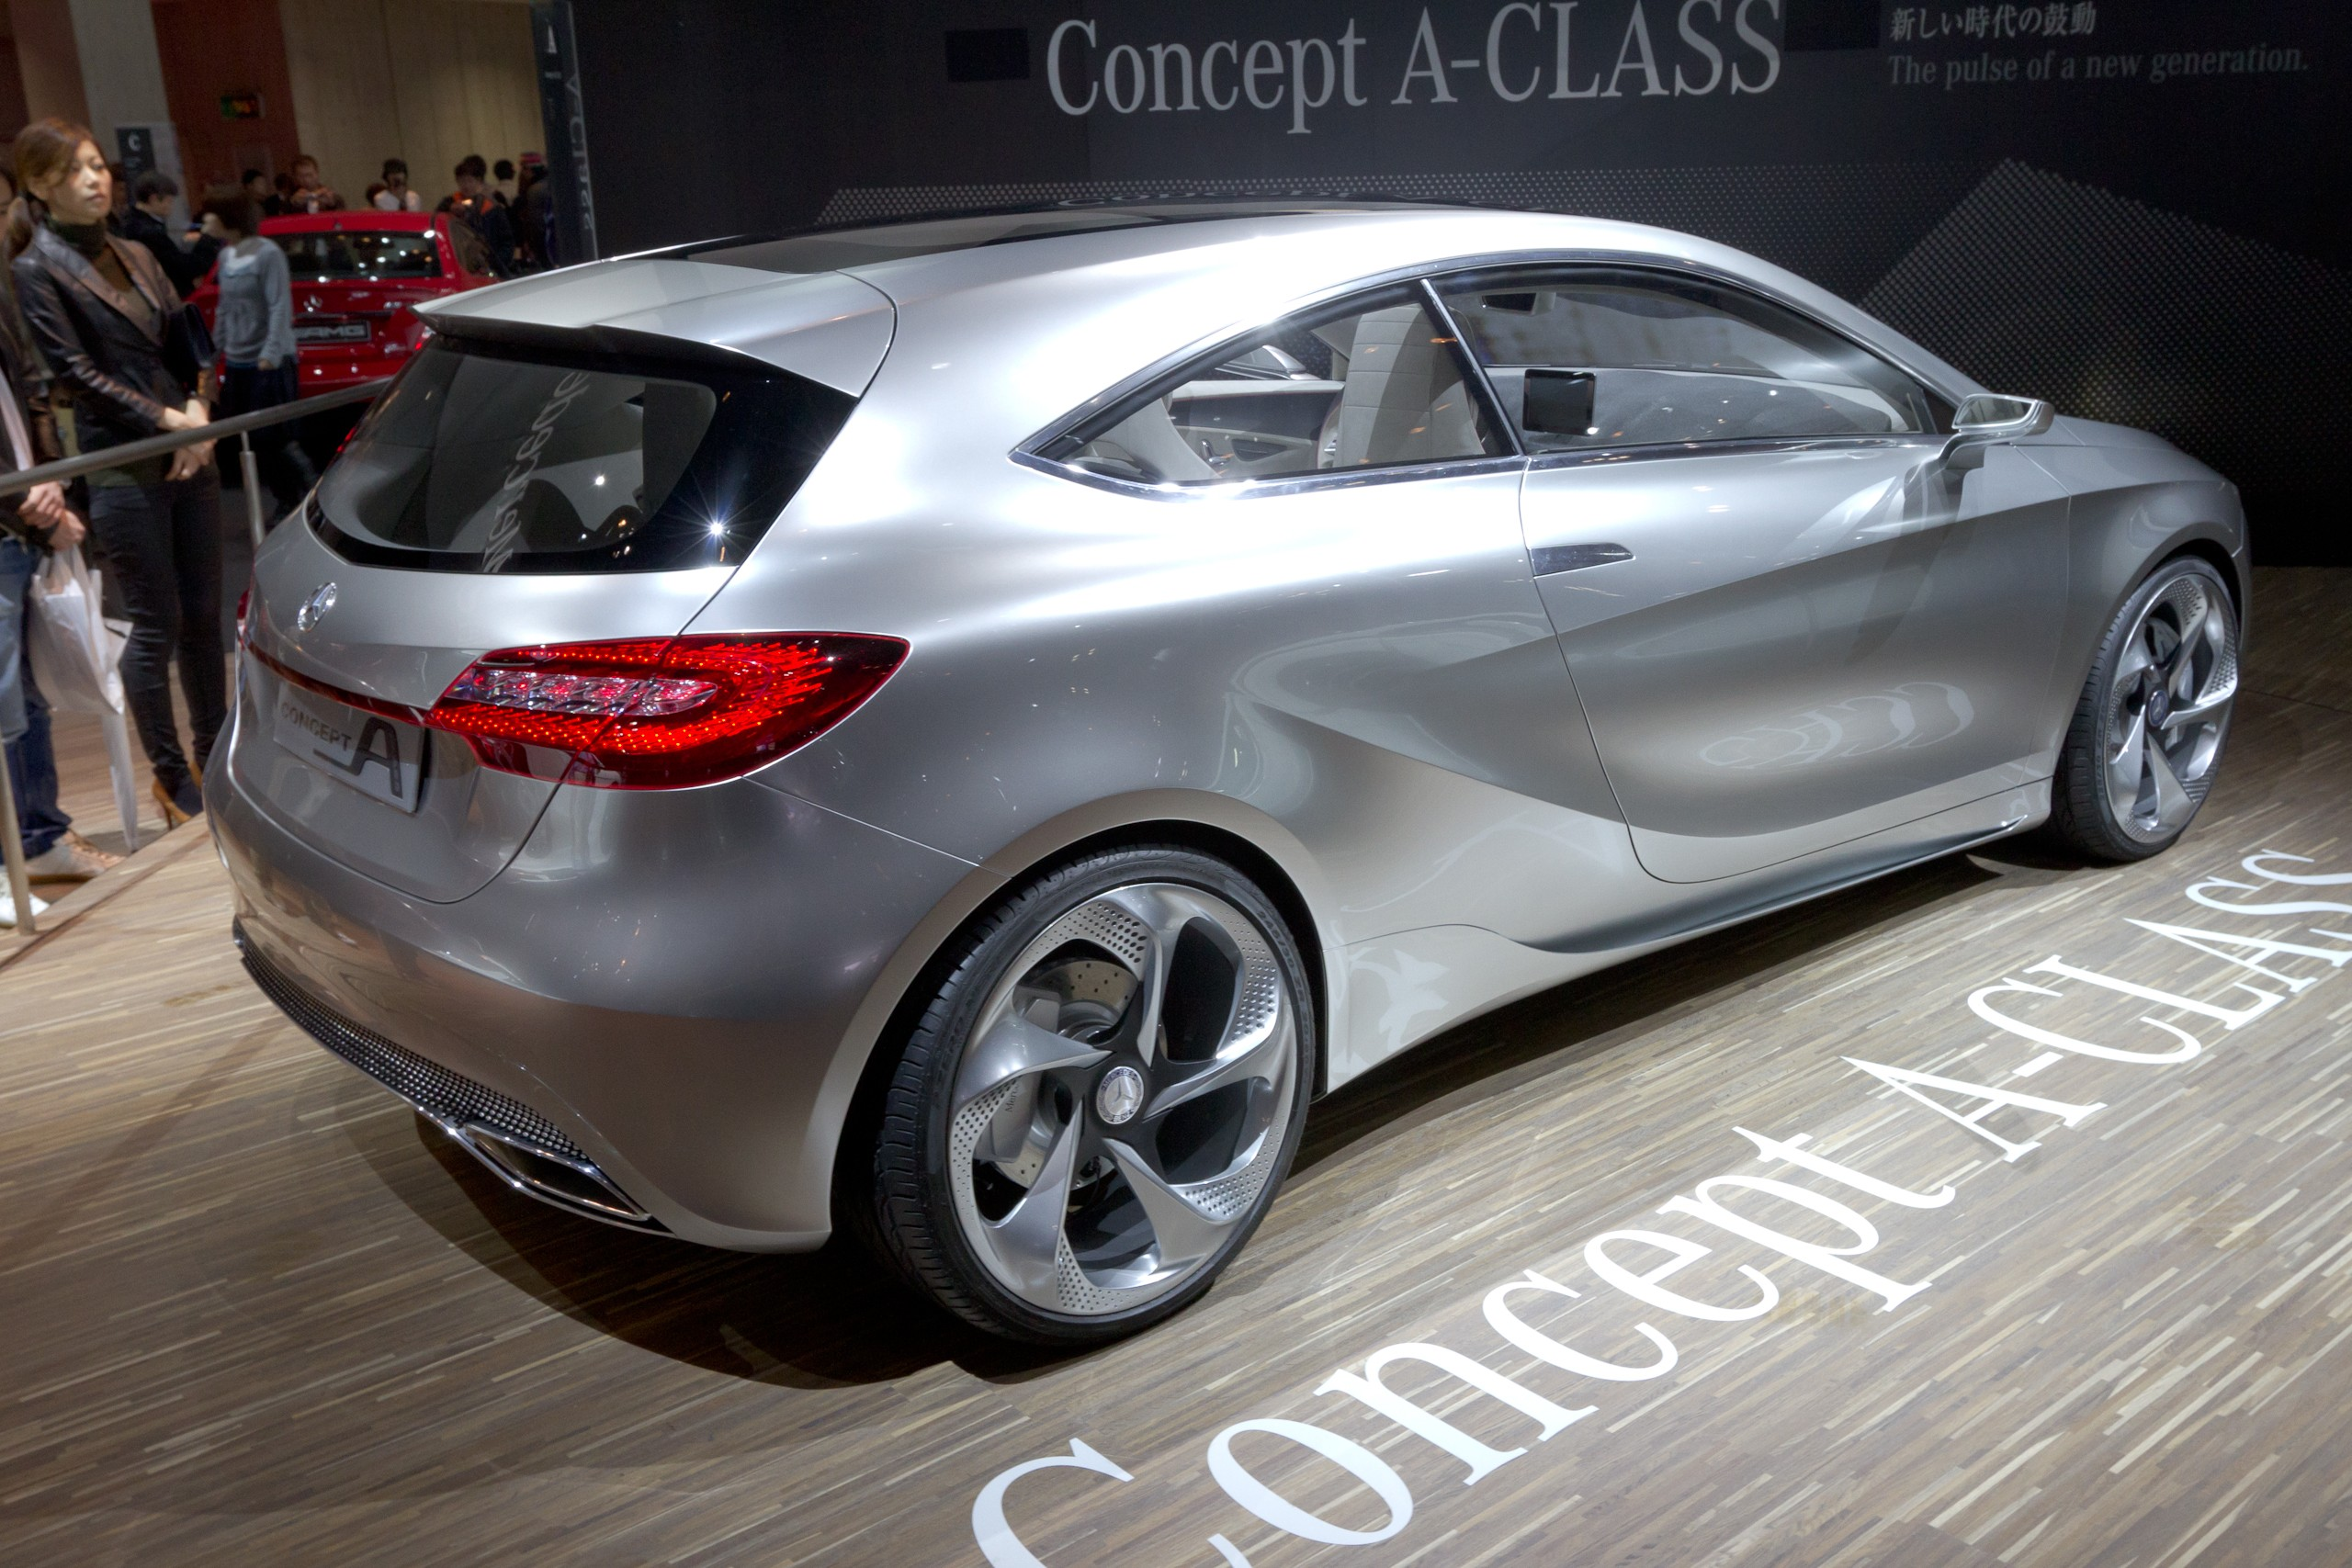 file mercedes benz concept a class rear 2011 tokyo motor wikimedia commons. Black Bedroom Furniture Sets. Home Design Ideas